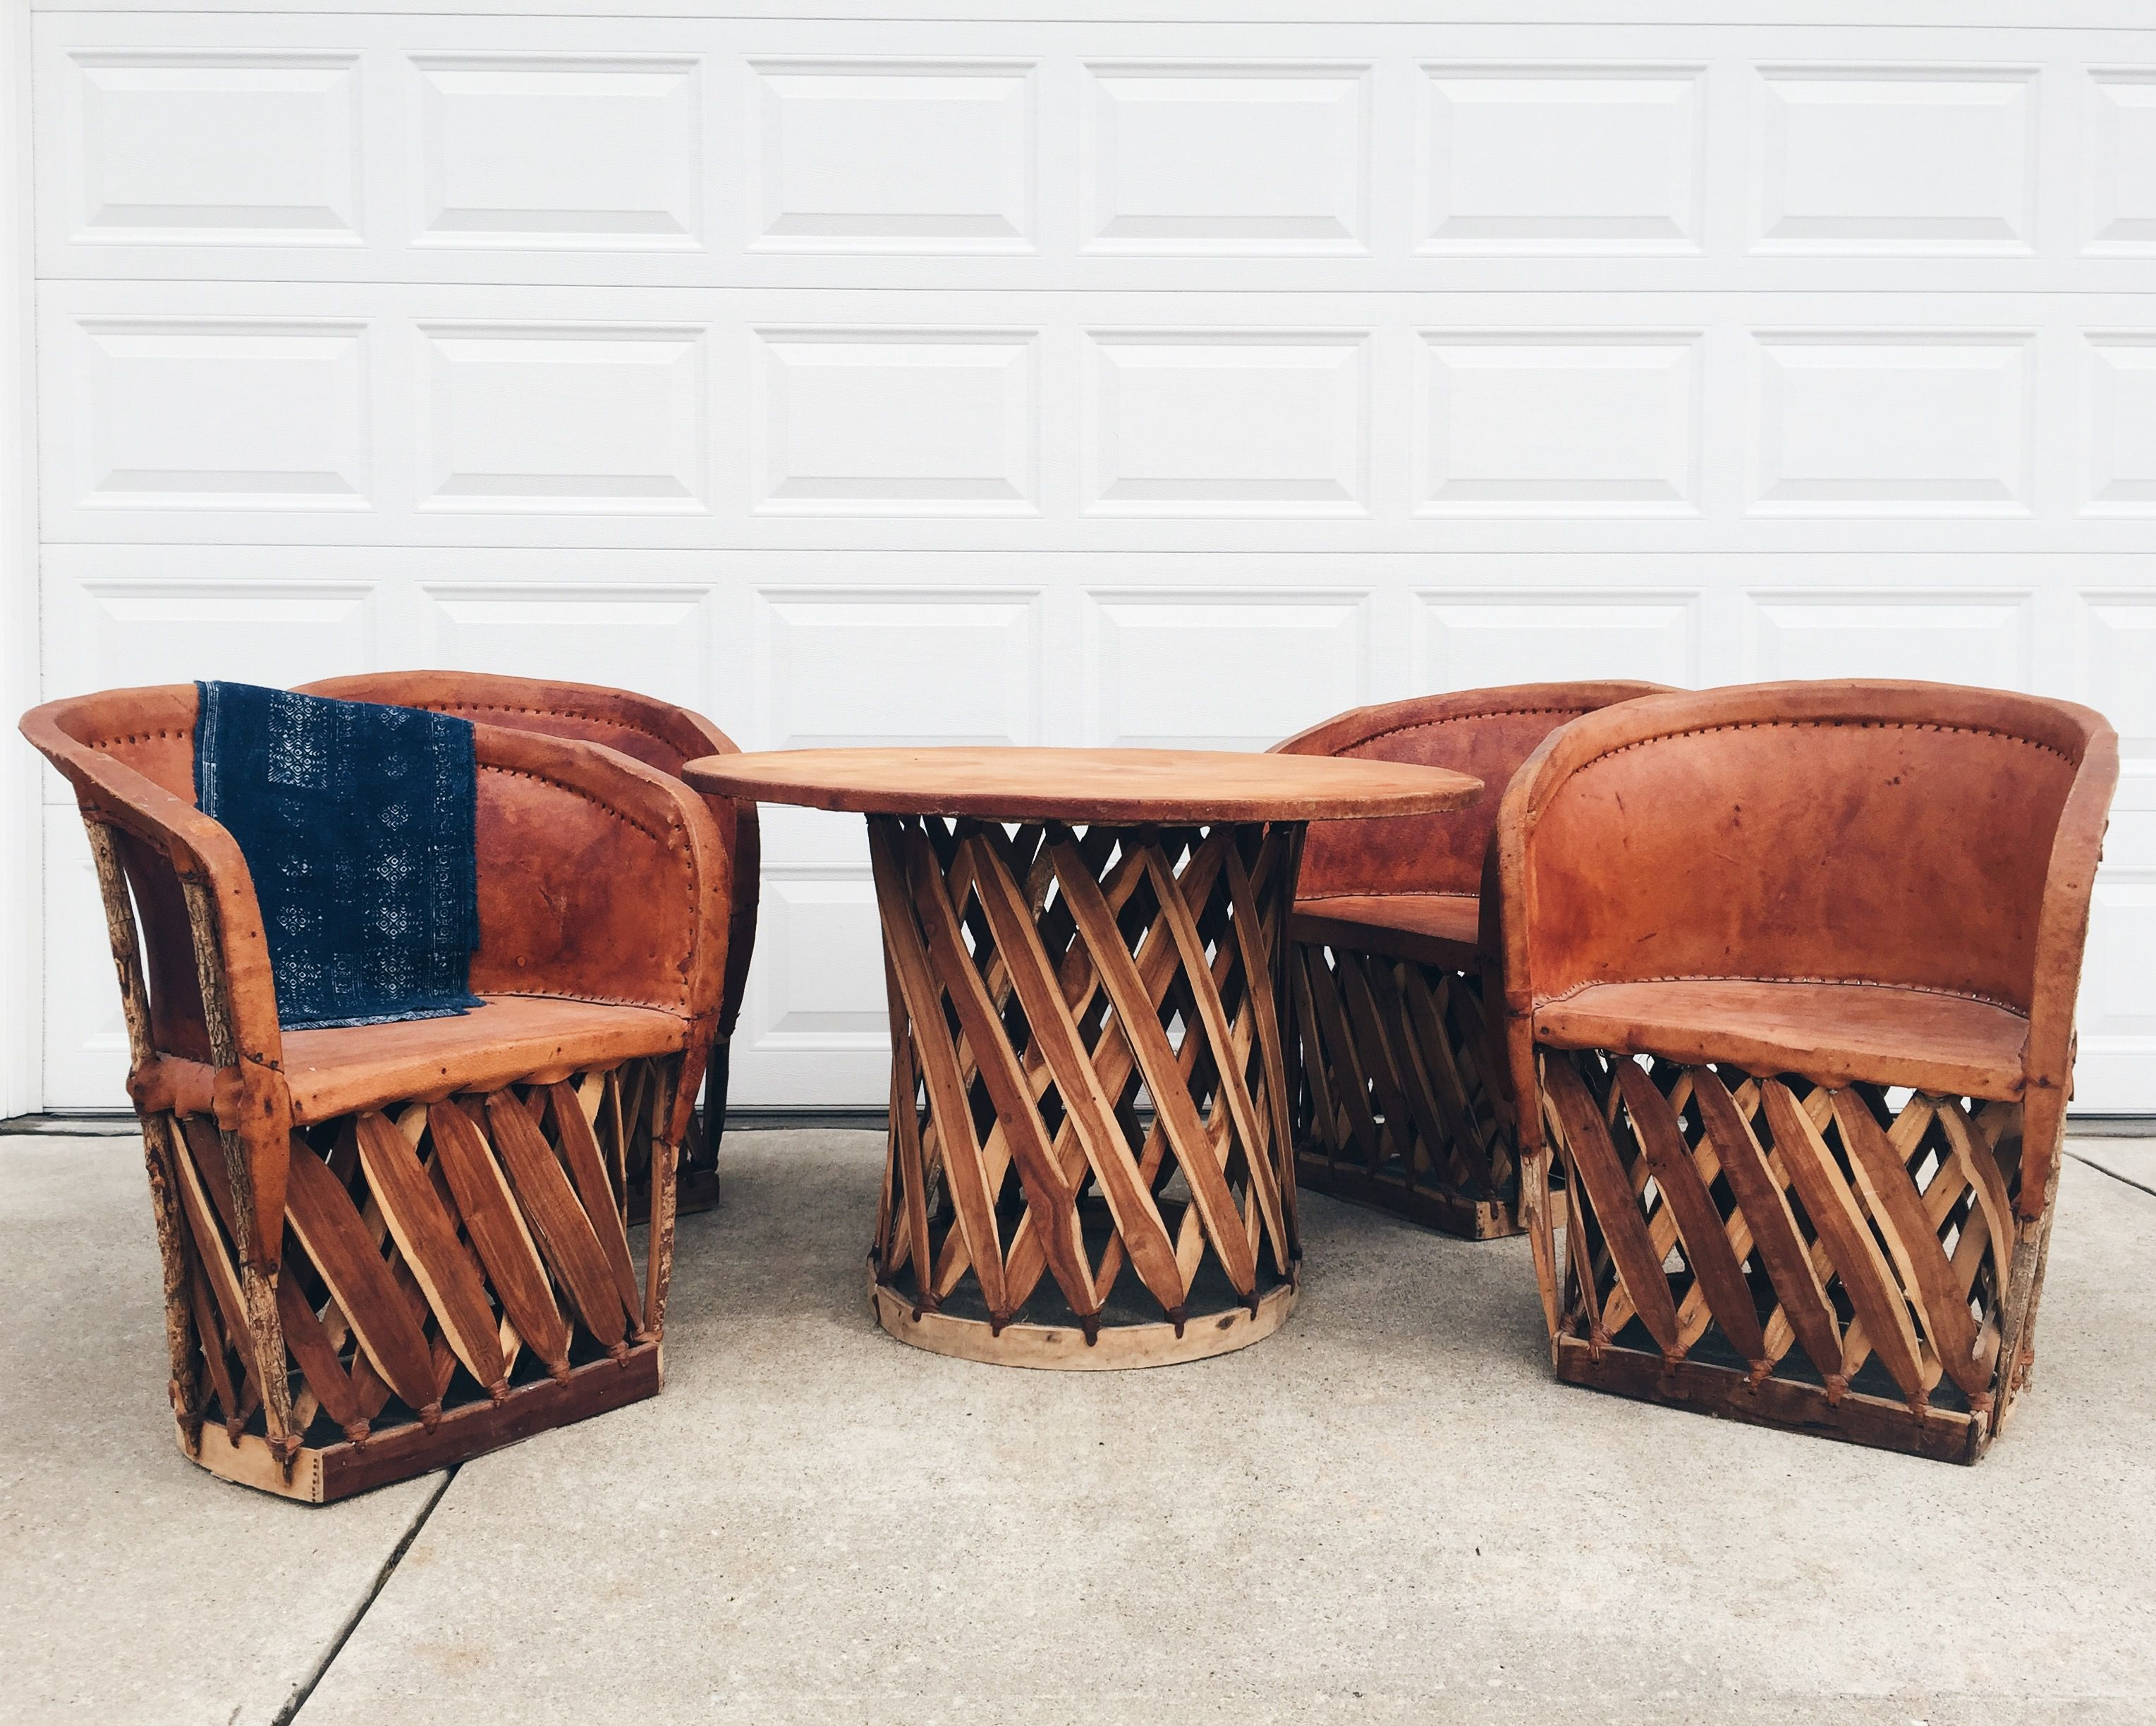 Attractive Mexican Equipale Leather Table, Equipale Dining Table, Leather And Wood  Table, Mexican Table, Patio Furniture